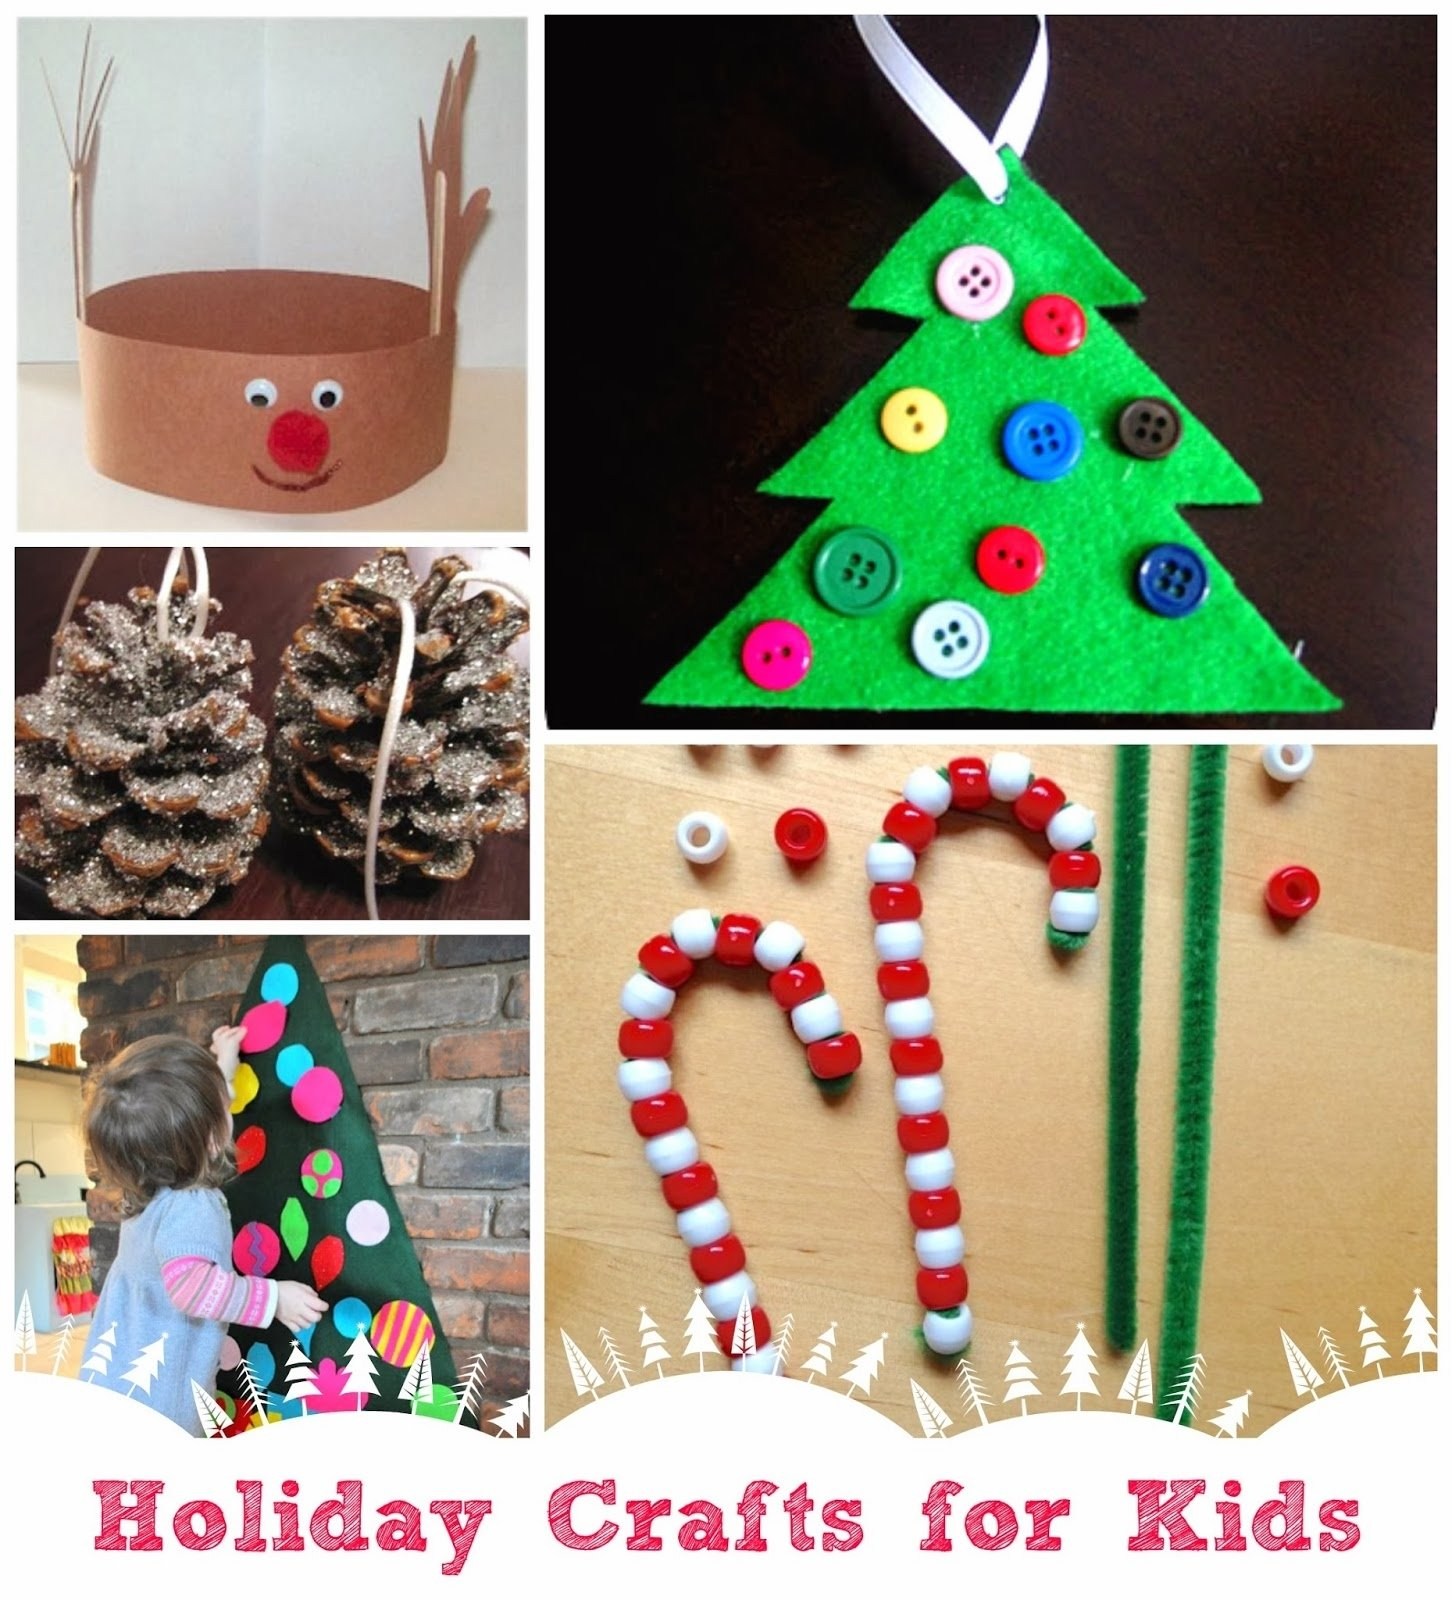 10 Elegant Cheap Christmas Craft Ideas For Kids parent talk matters blog holiday craft ideas for kids 5 2020